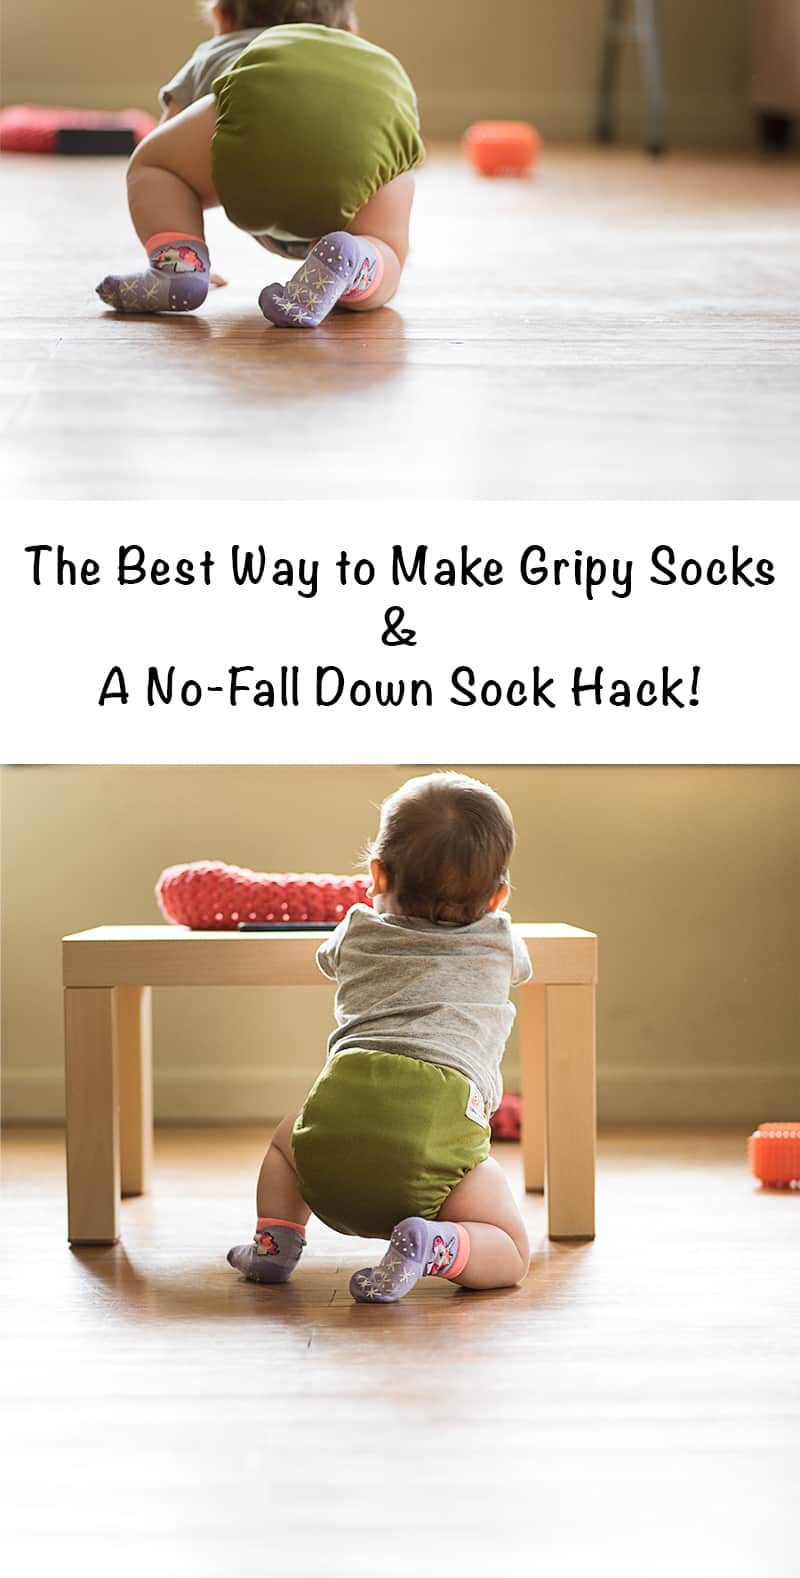 the best way to make grippy socks and a no-fall down sock hack!